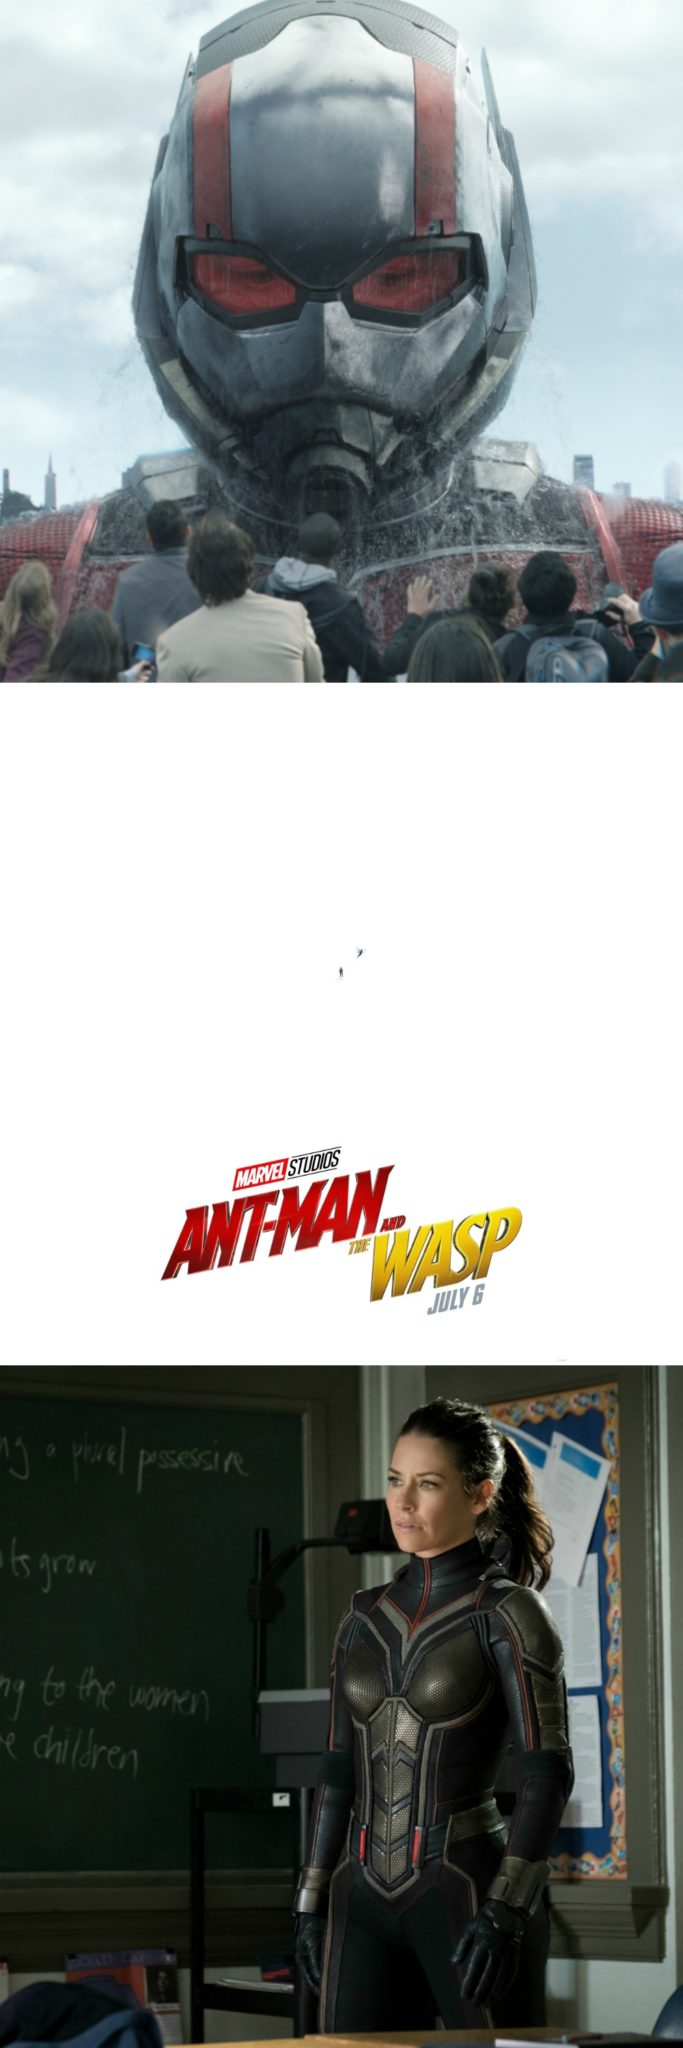 ANT-MAN AND THE WASP trailer released and new teaser poster. Coming to theaters everywhere on July 6th!